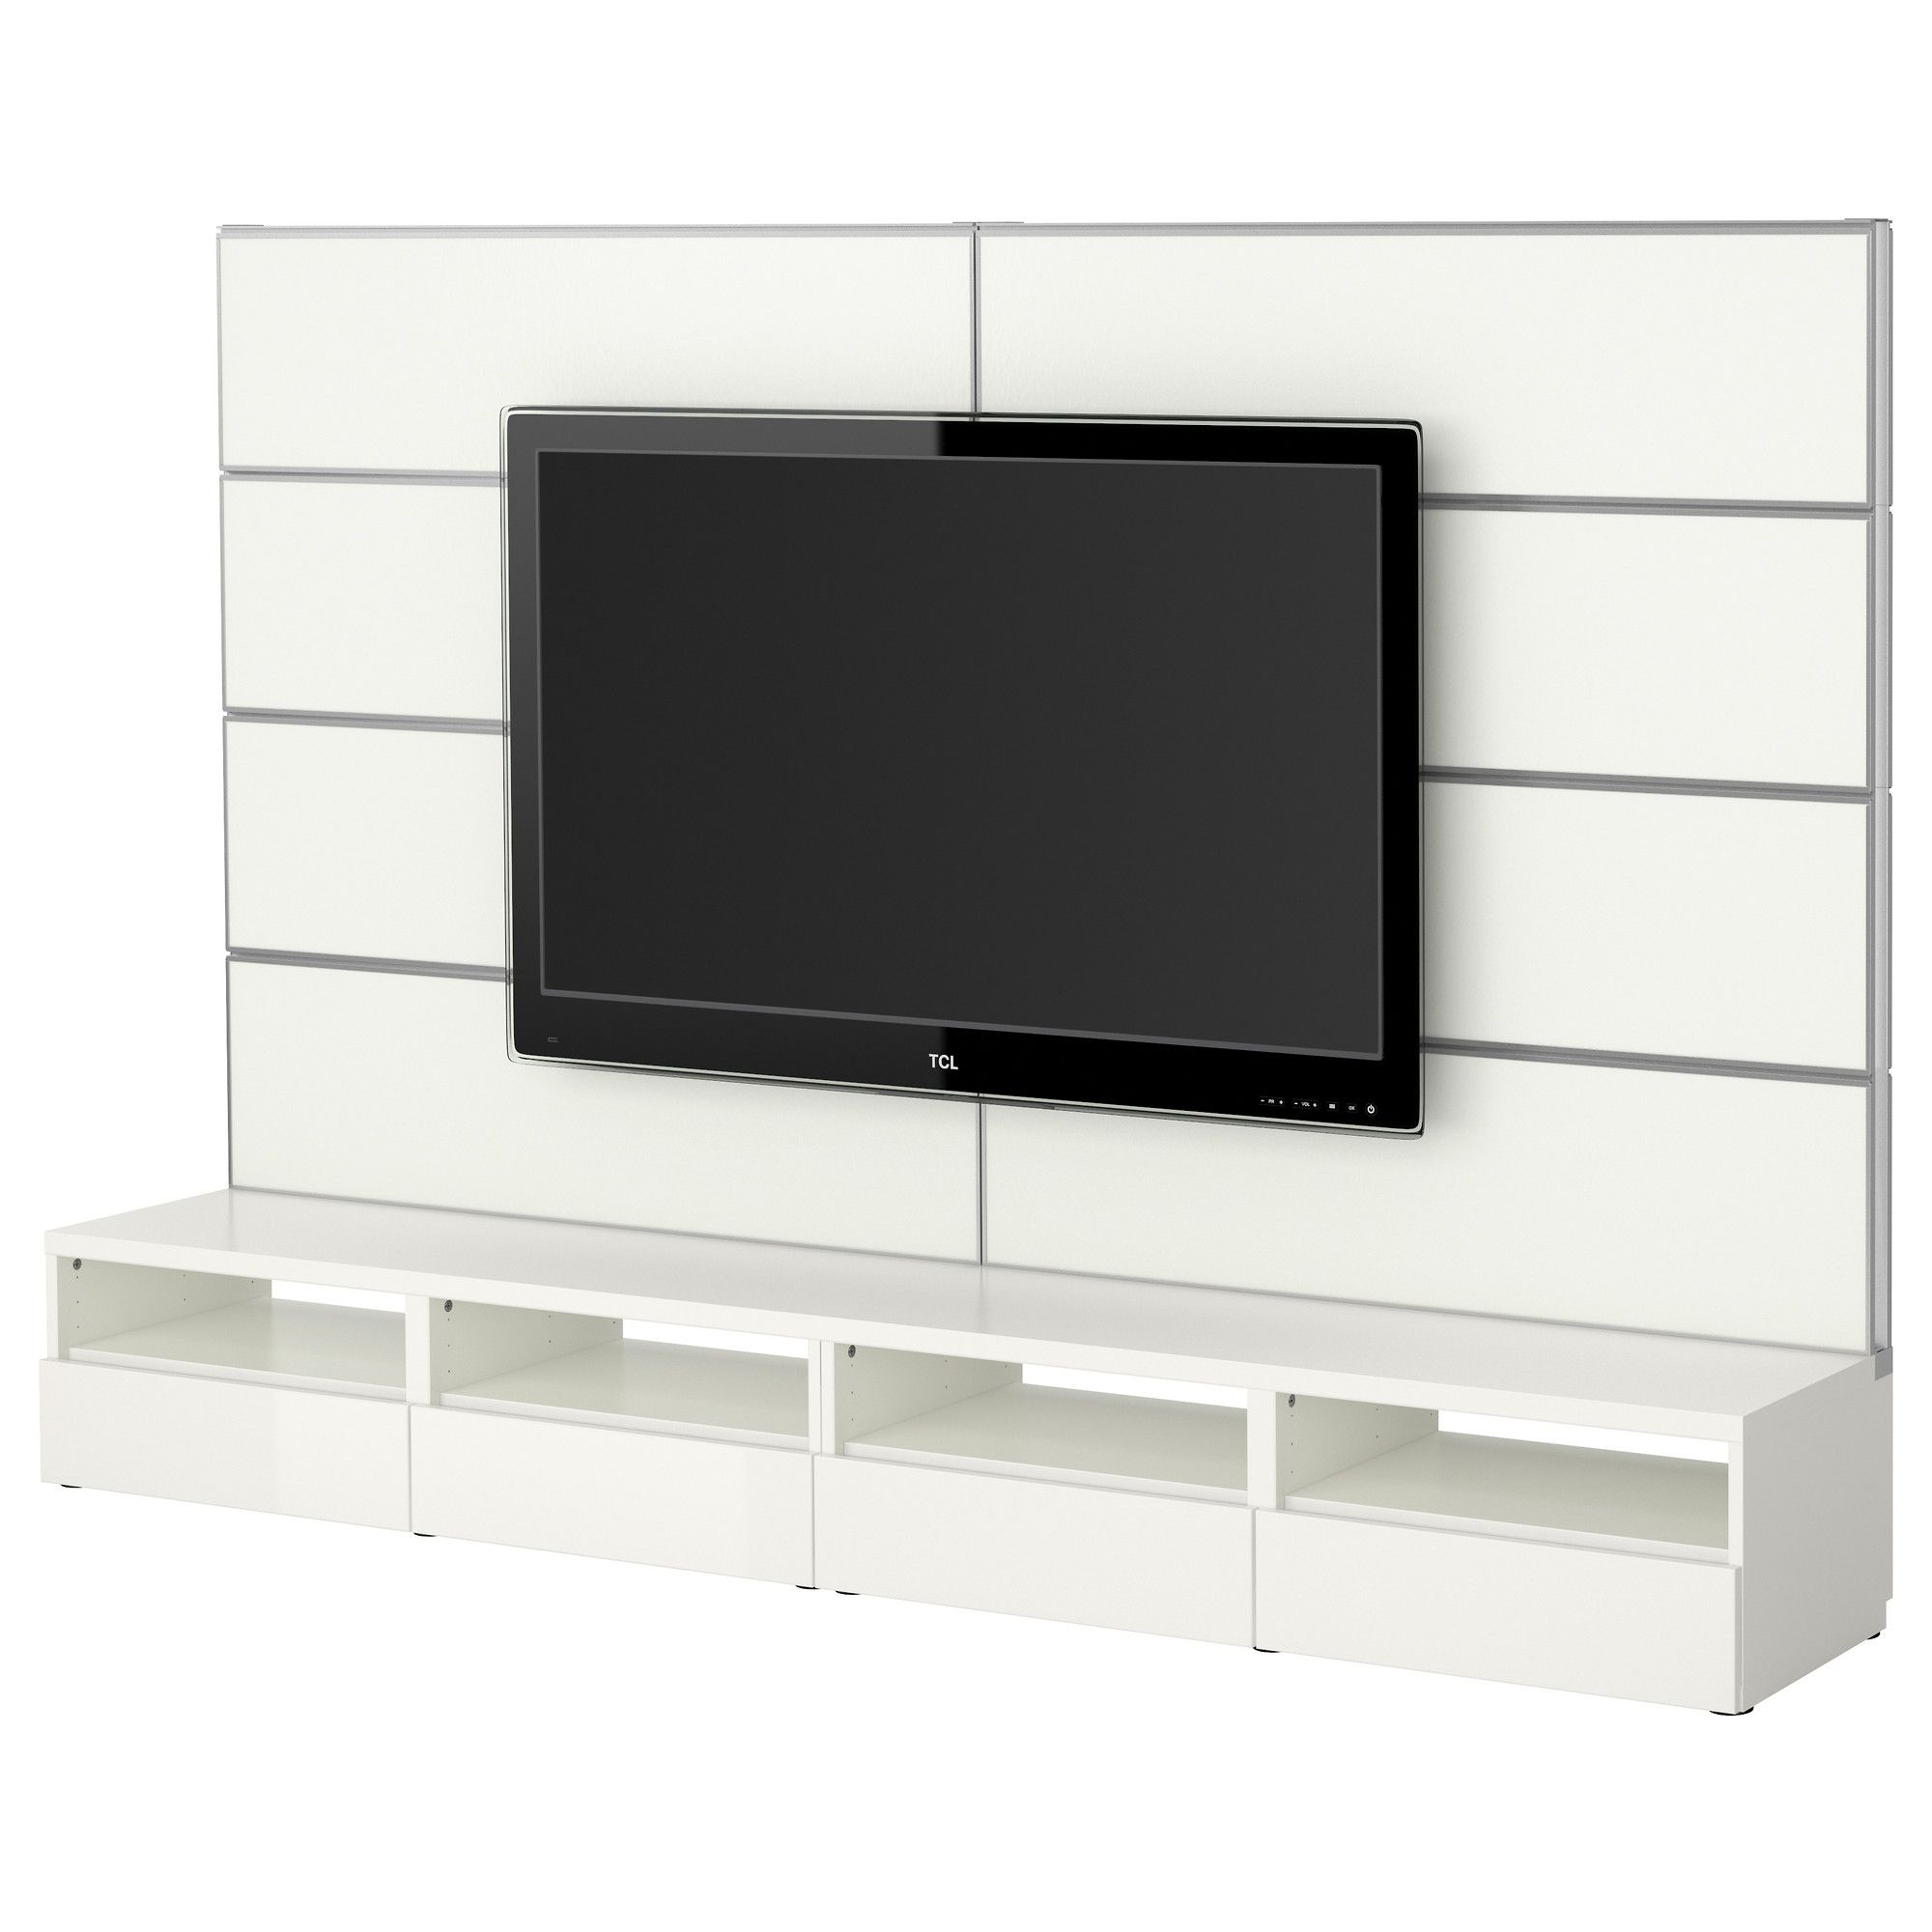 Best framst tv storage combination white ikea apt - Meuble support tv ikea ...